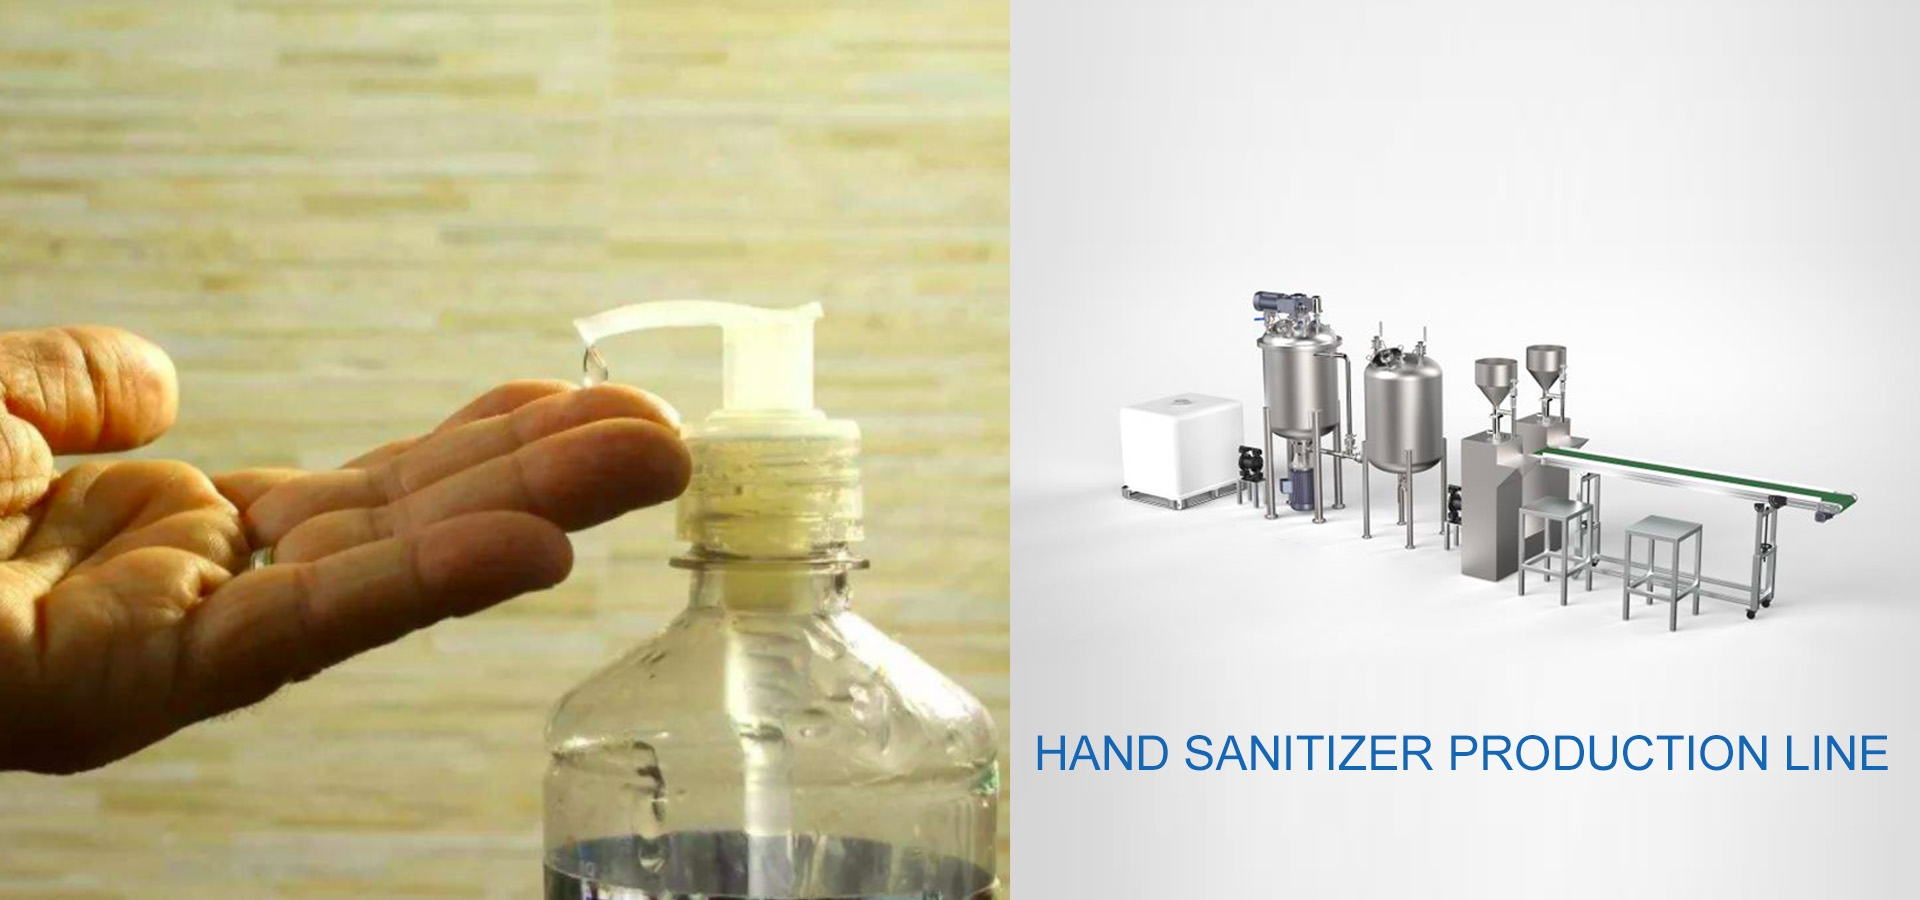 hand sanitizer production line